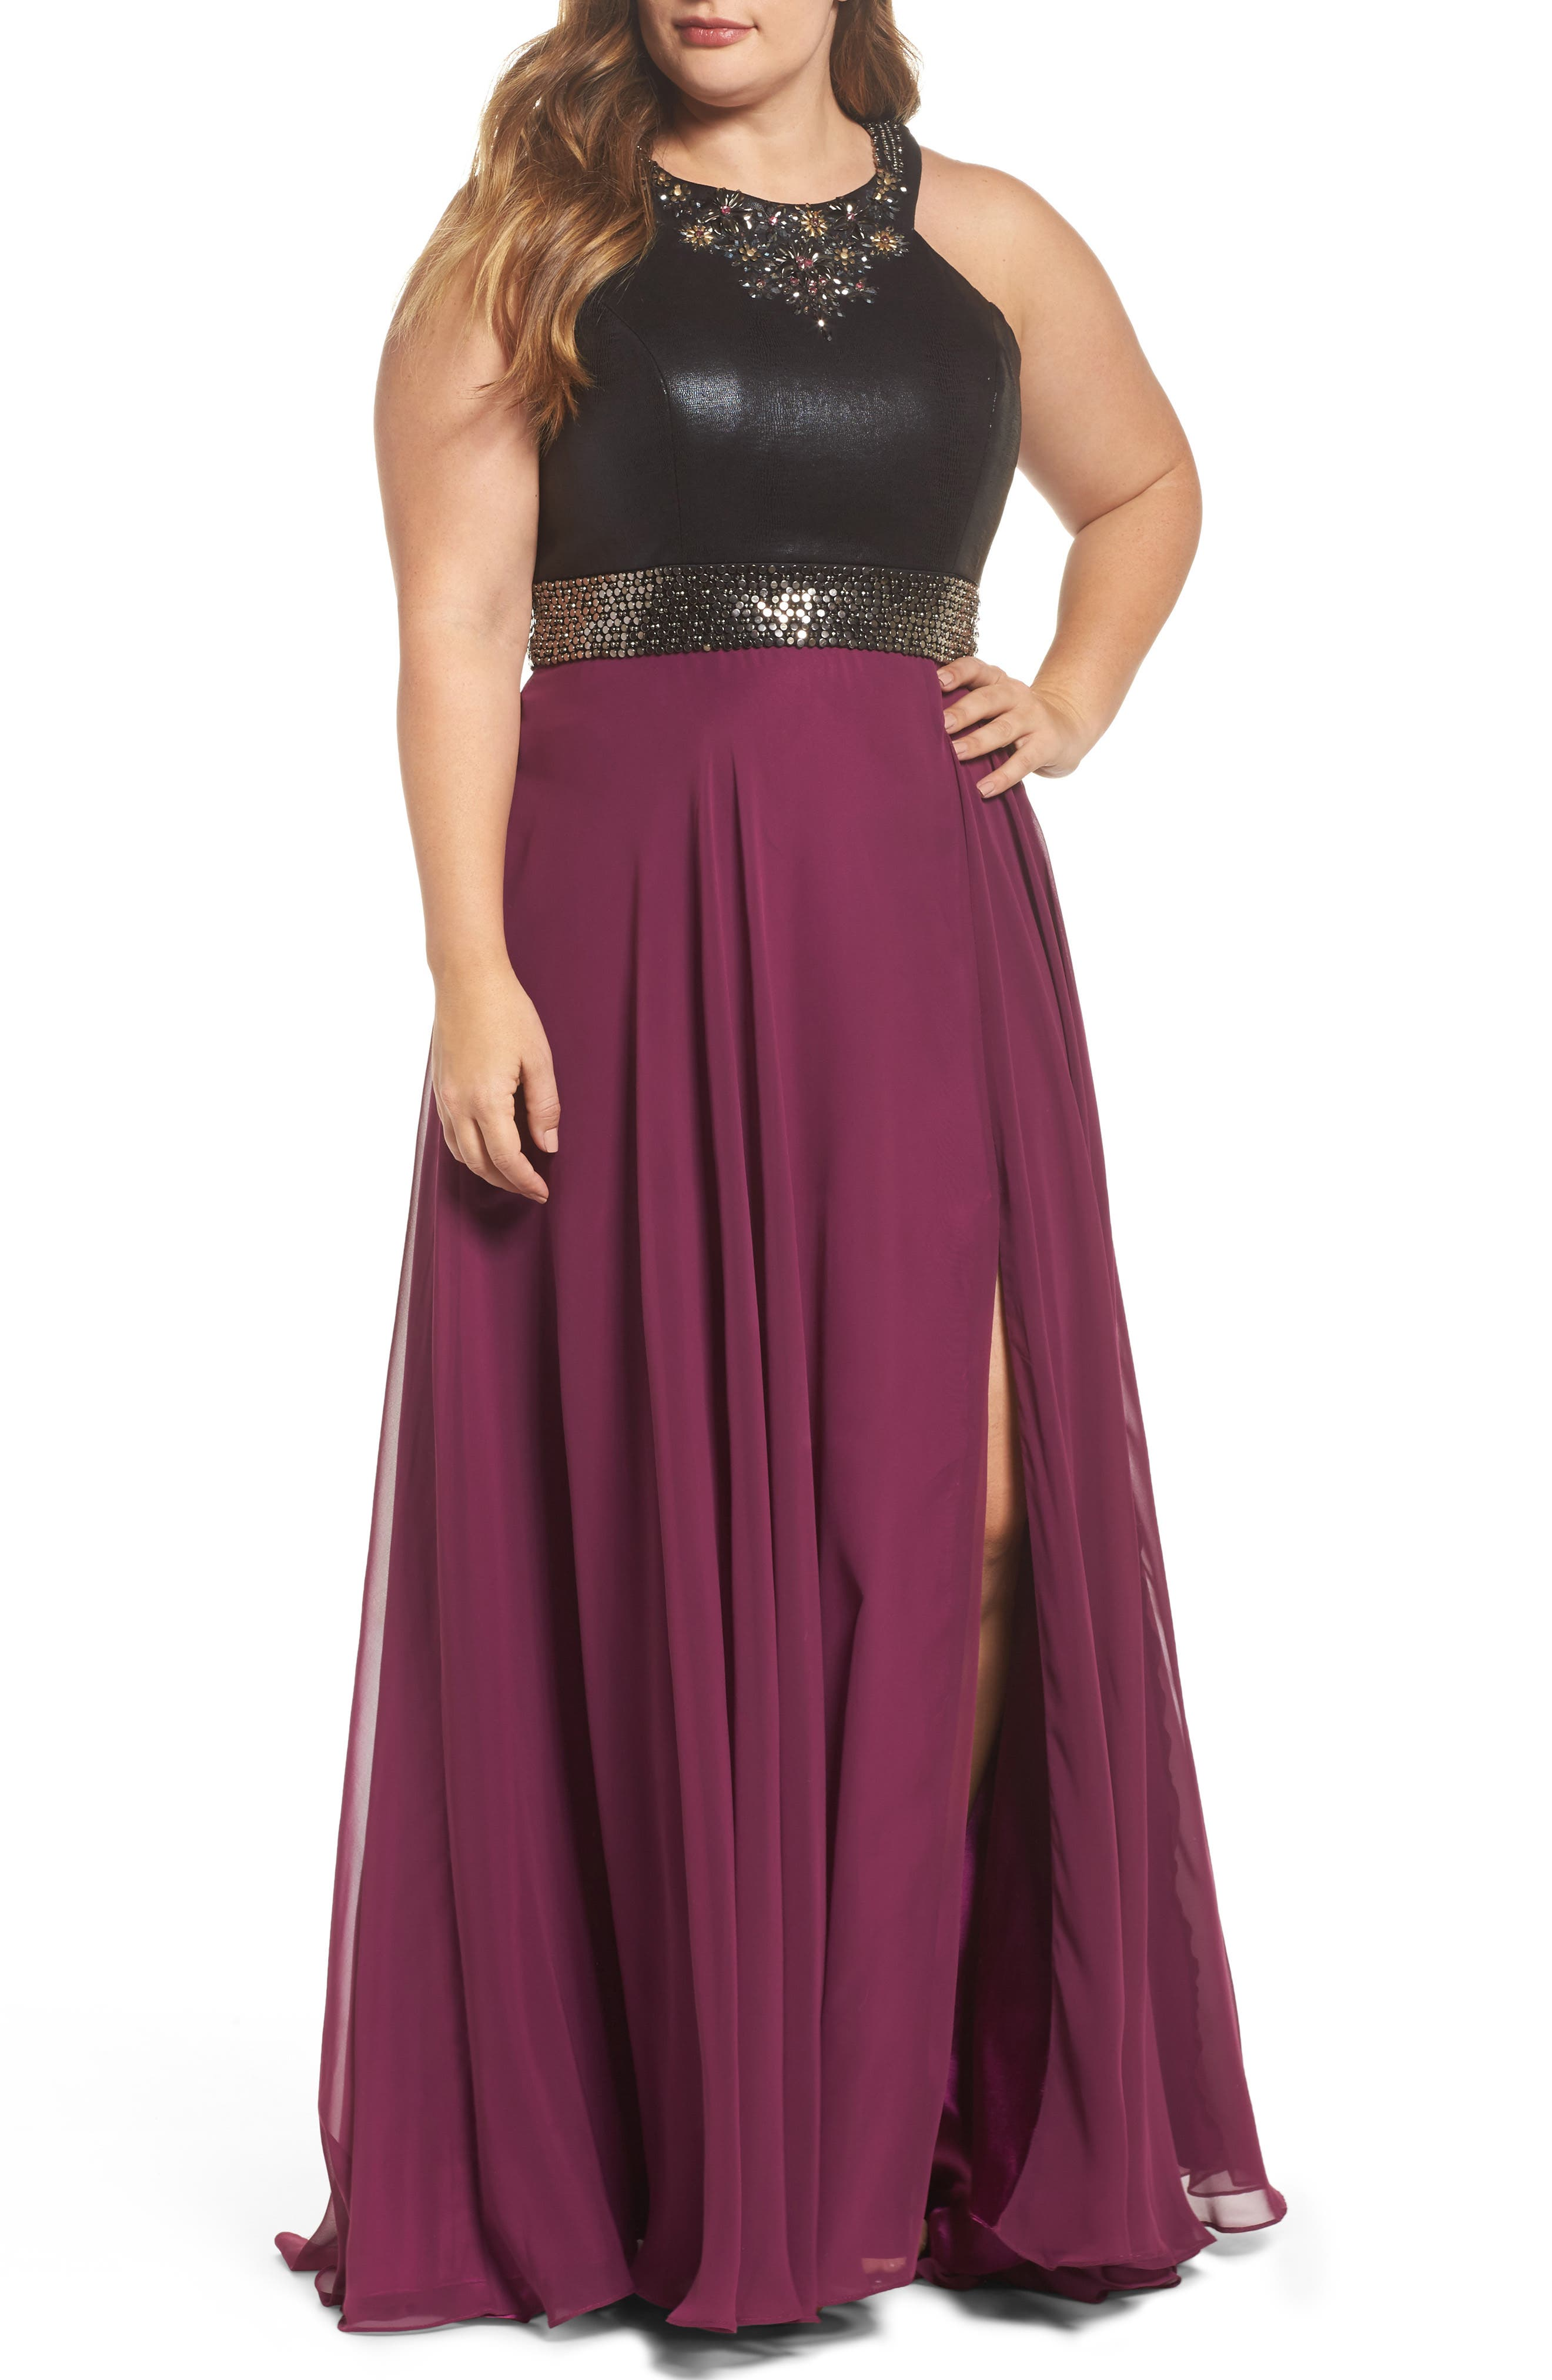 Beaded High Neck Gown,                         Main,                         color, Purple/ Black